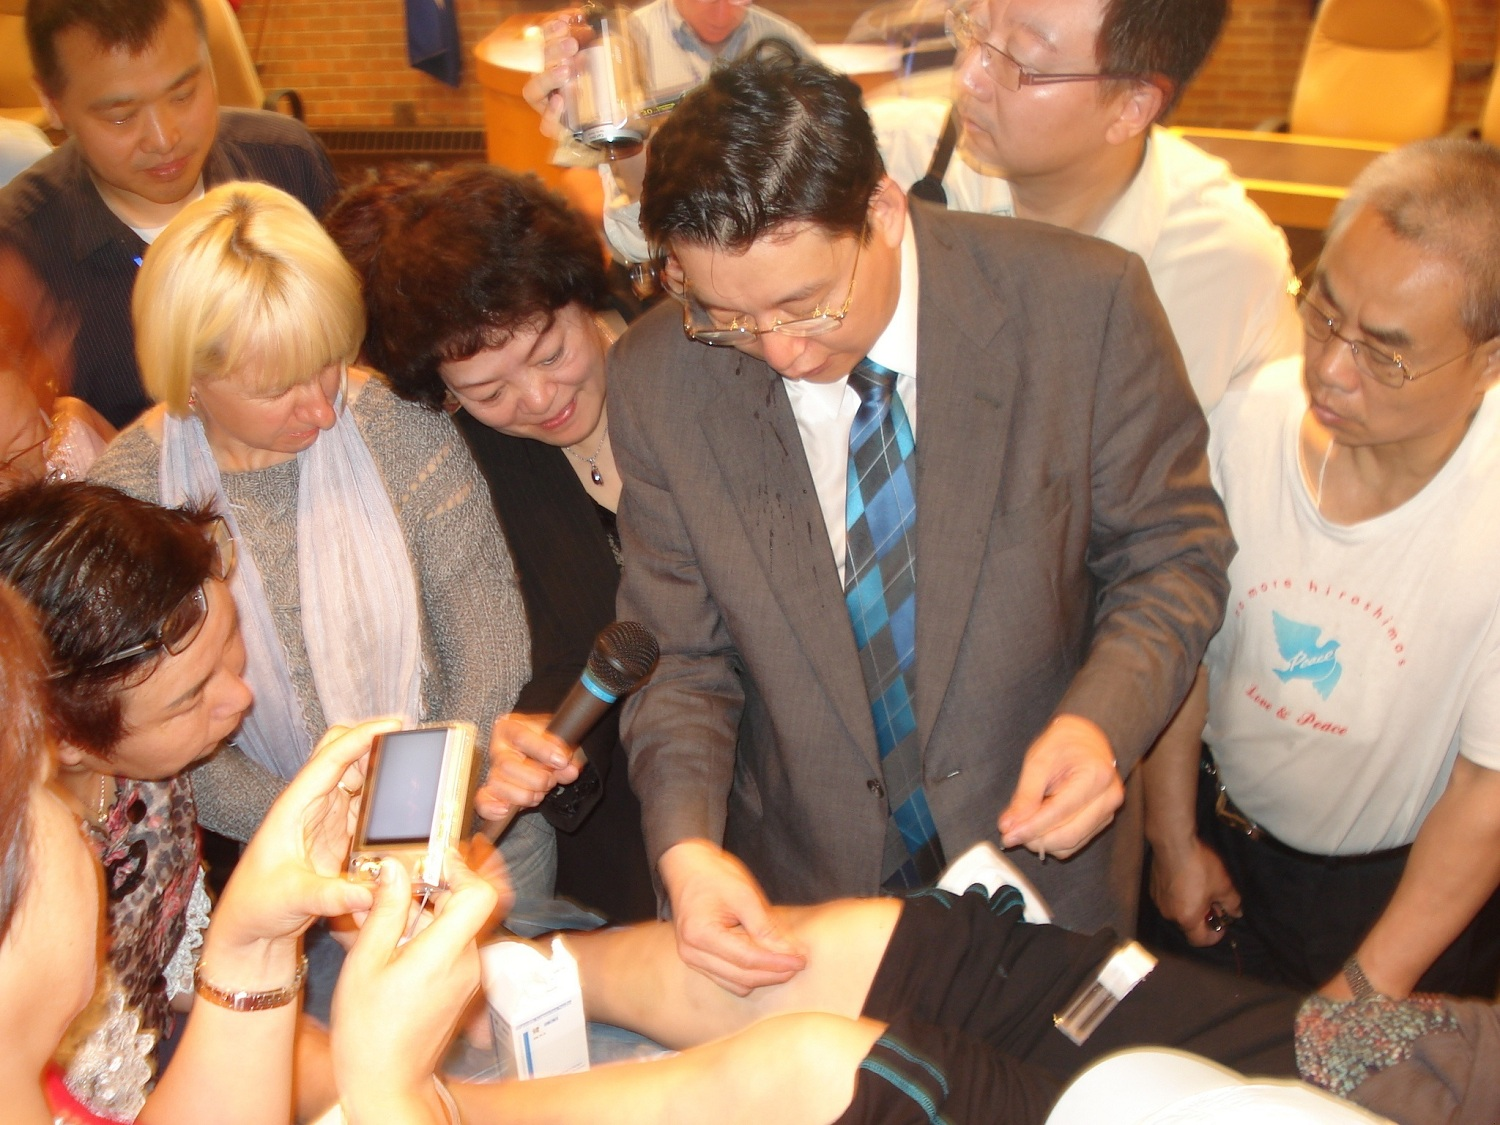 Dr. Chen was in the International Acupuncture conference